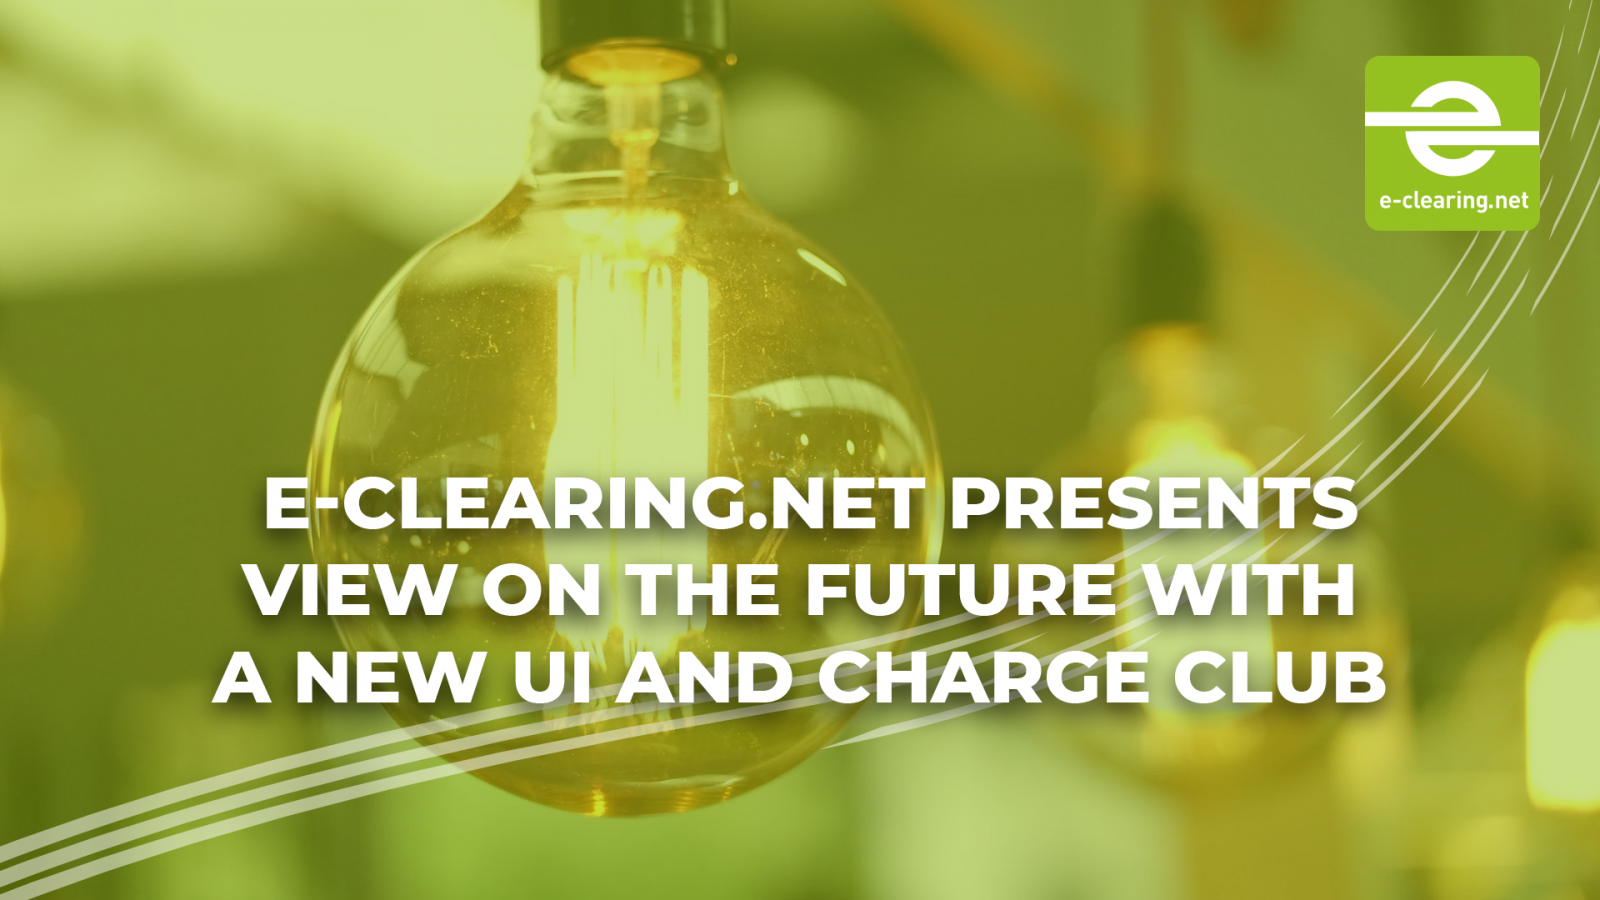 E-clearing.net presents view on the future with a new UI and Charge Club